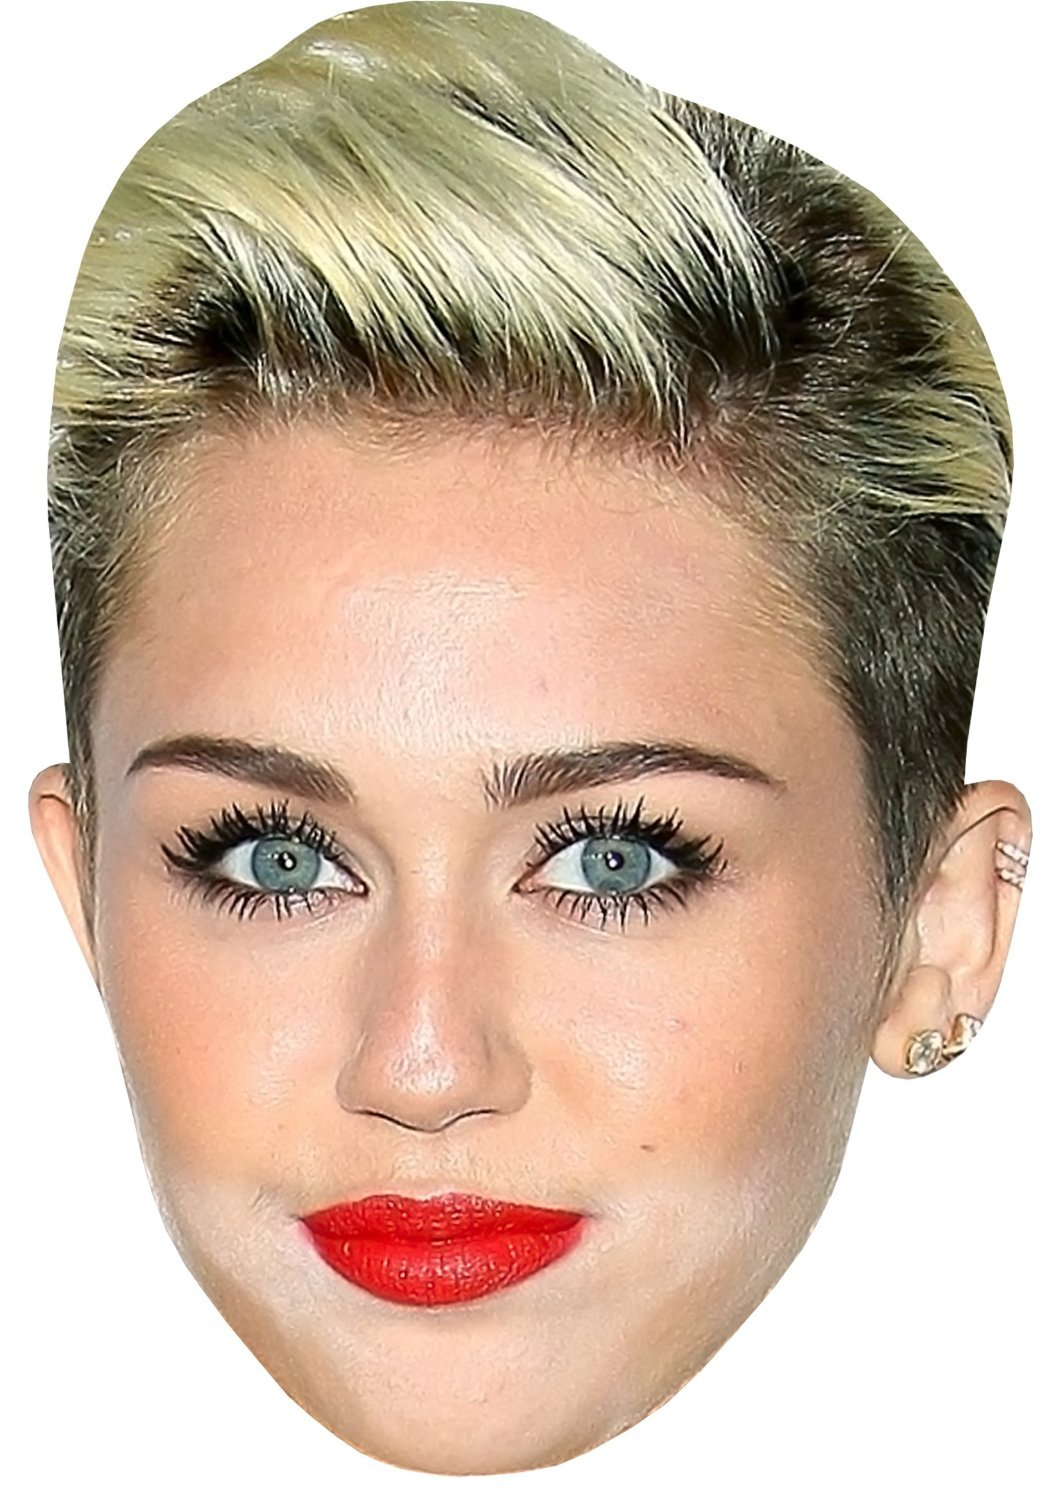 Celebrity face mask kit miley cyrus do it yourself diy 4 celebrity face mask kit miley cyrus do it yourself diy 4 amazon toys games solutioingenieria Gallery